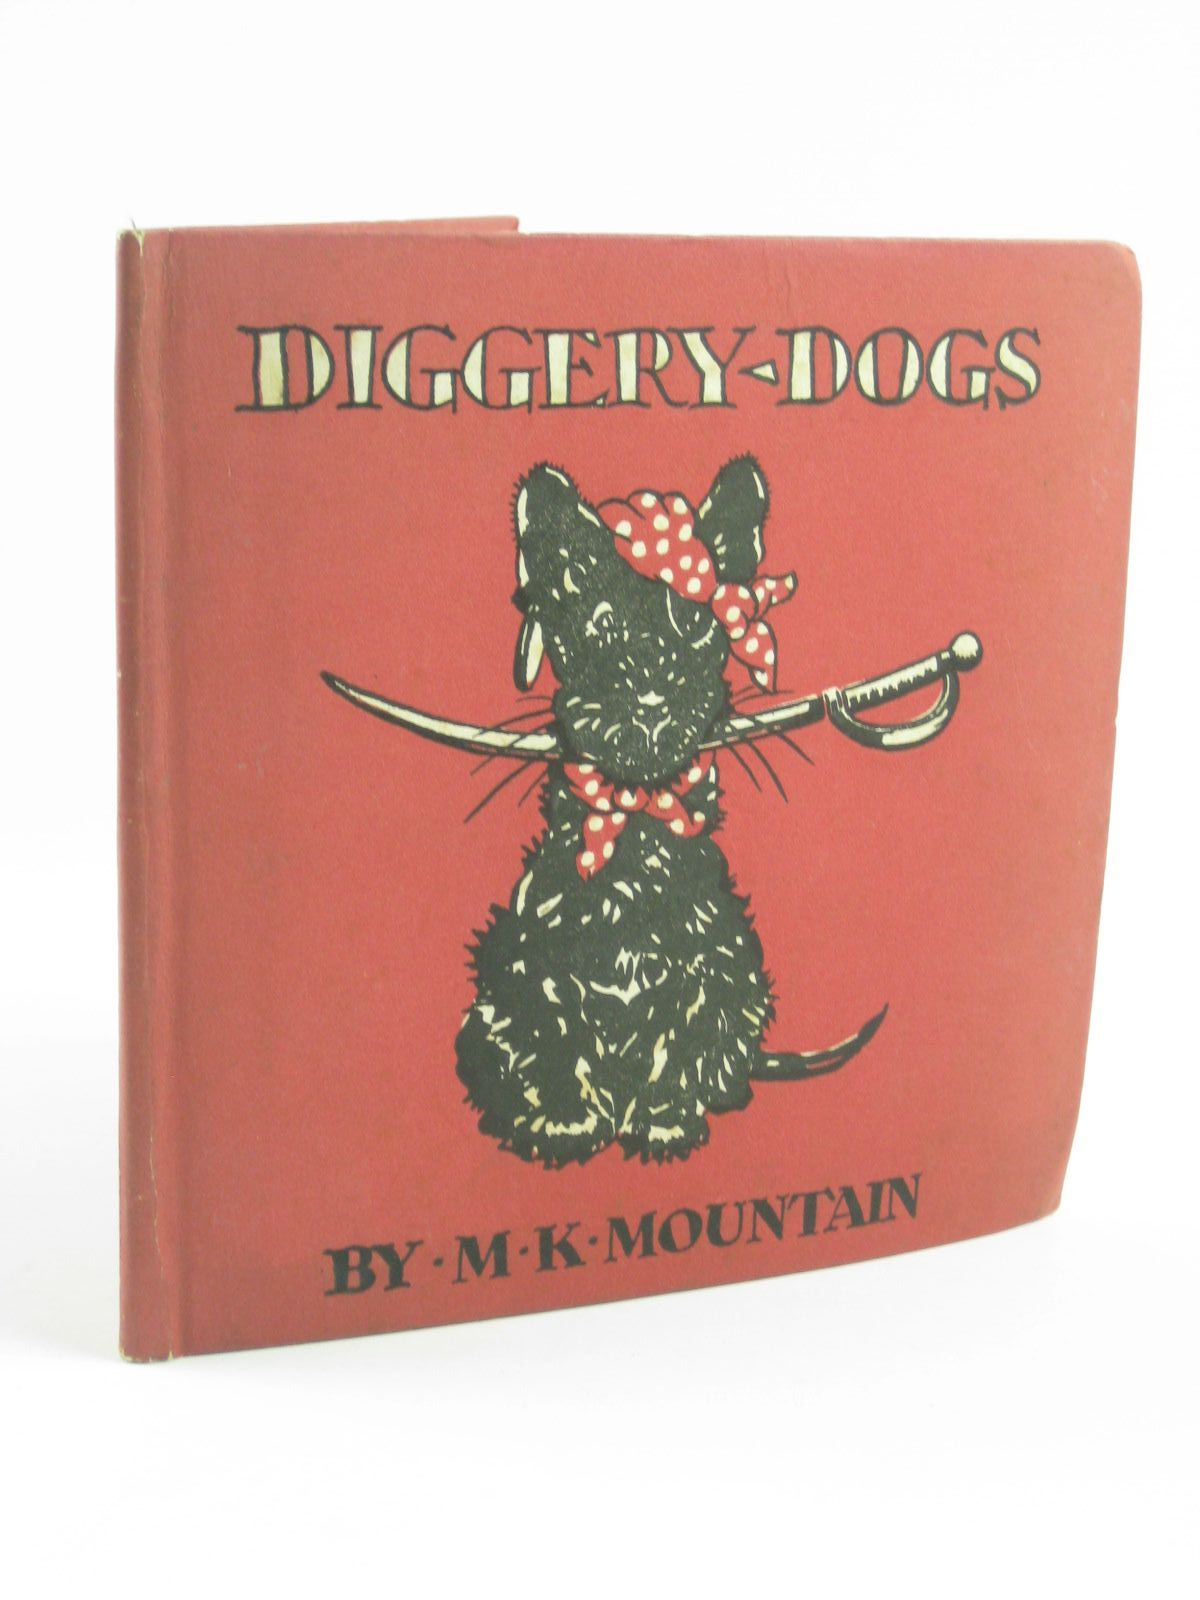 Photo of DIGGERY-DOGS THE ADVENTURER written by Mountain, M.K. illustrated by Mountain, M.K. published by Oxford University Press (STOCK CODE: 1401606)  for sale by Stella & Rose's Books